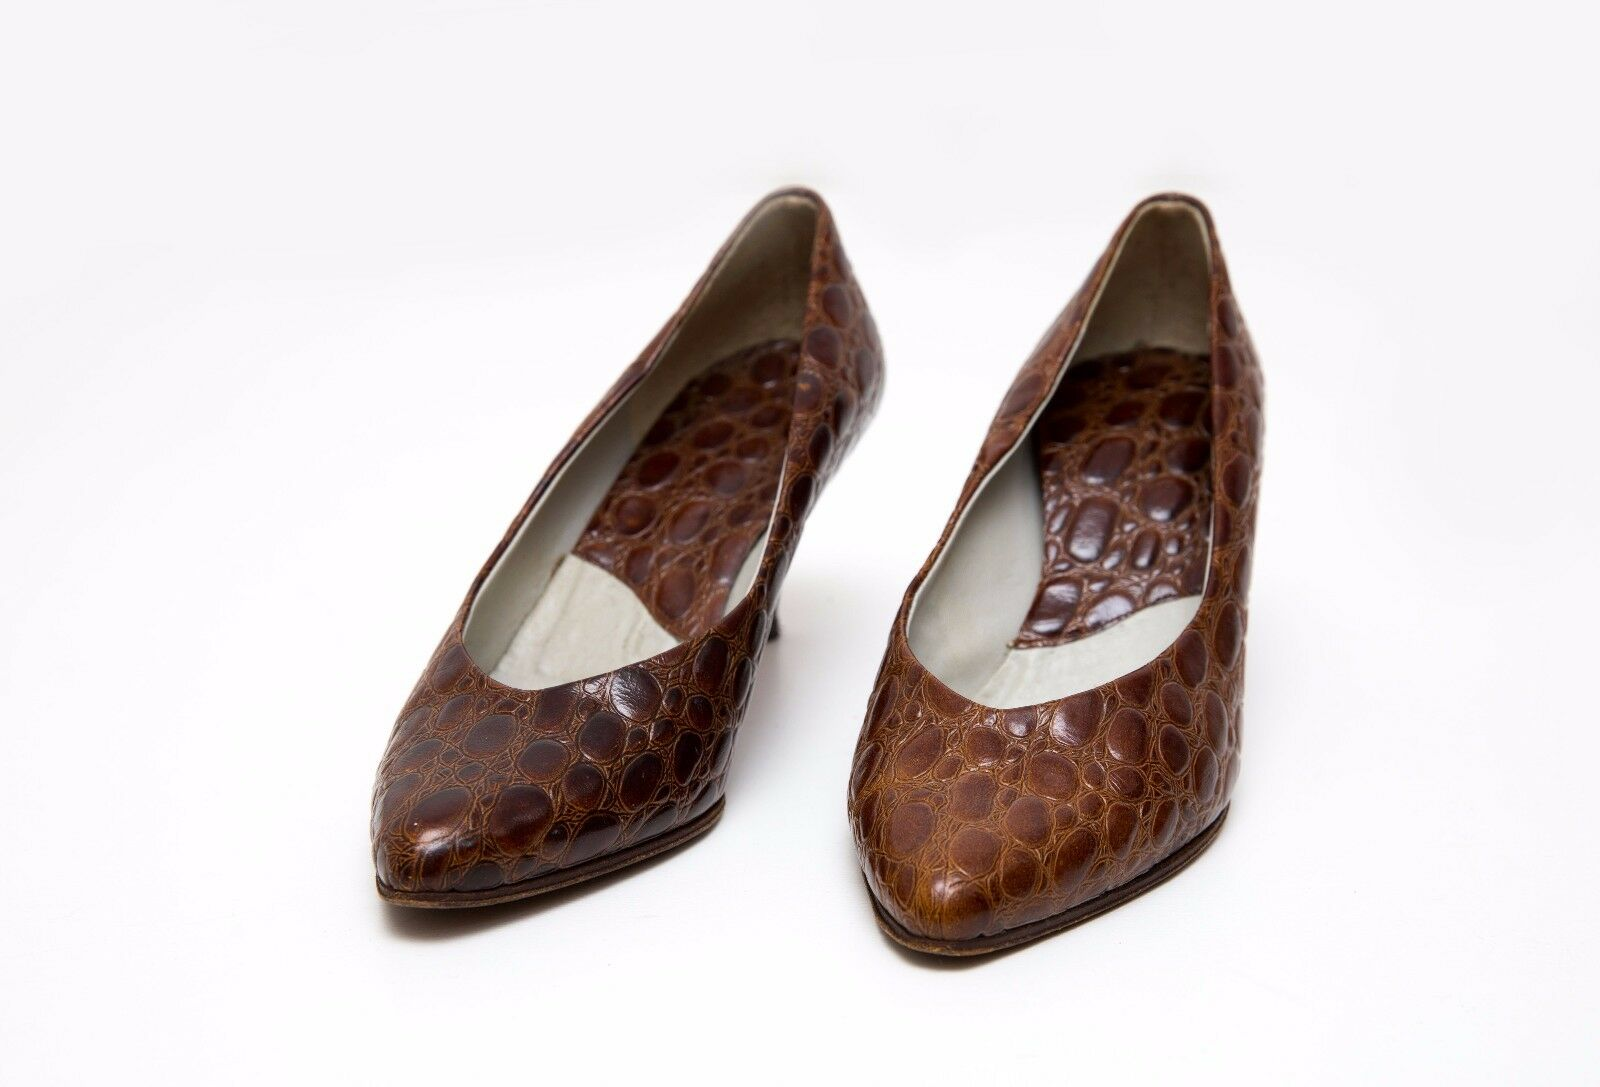 WOMENS LEATHER ROSS LOW HEEL SHOES 100 % GENUINE LEATHER WOMENS BROWN SIZE 37 EXC 0b37d0